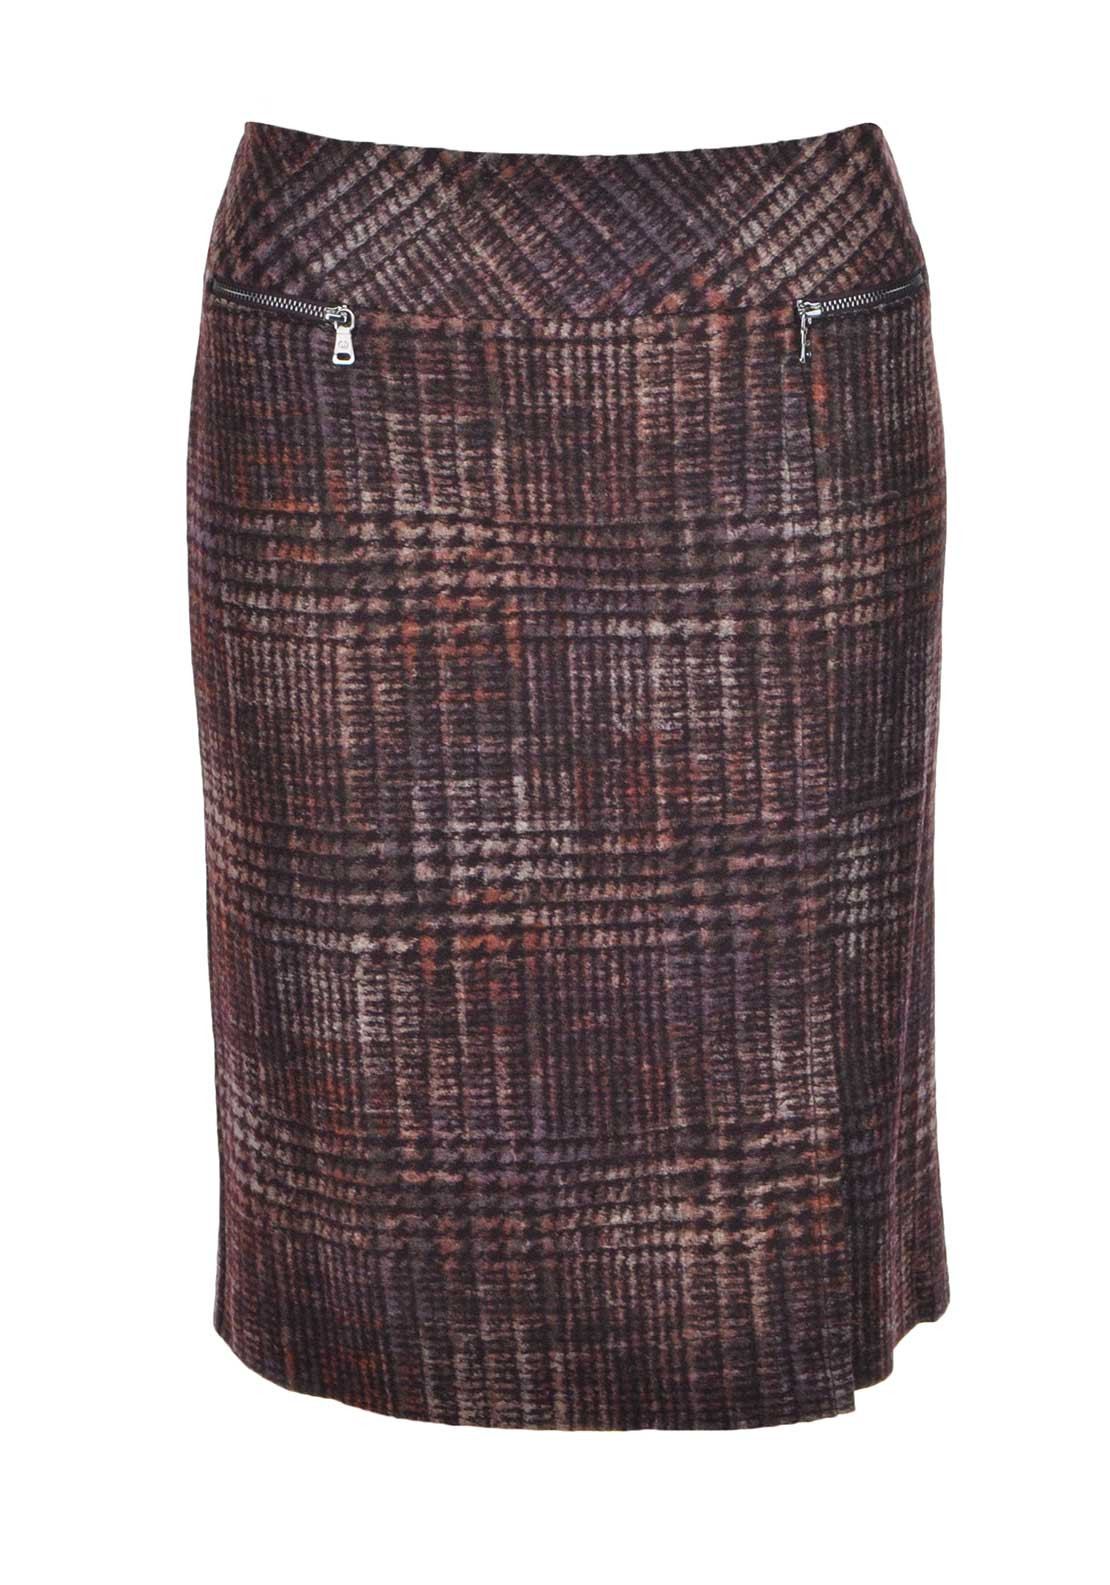 Gerry Weber Tweed Print Pencil Skirt, Wine